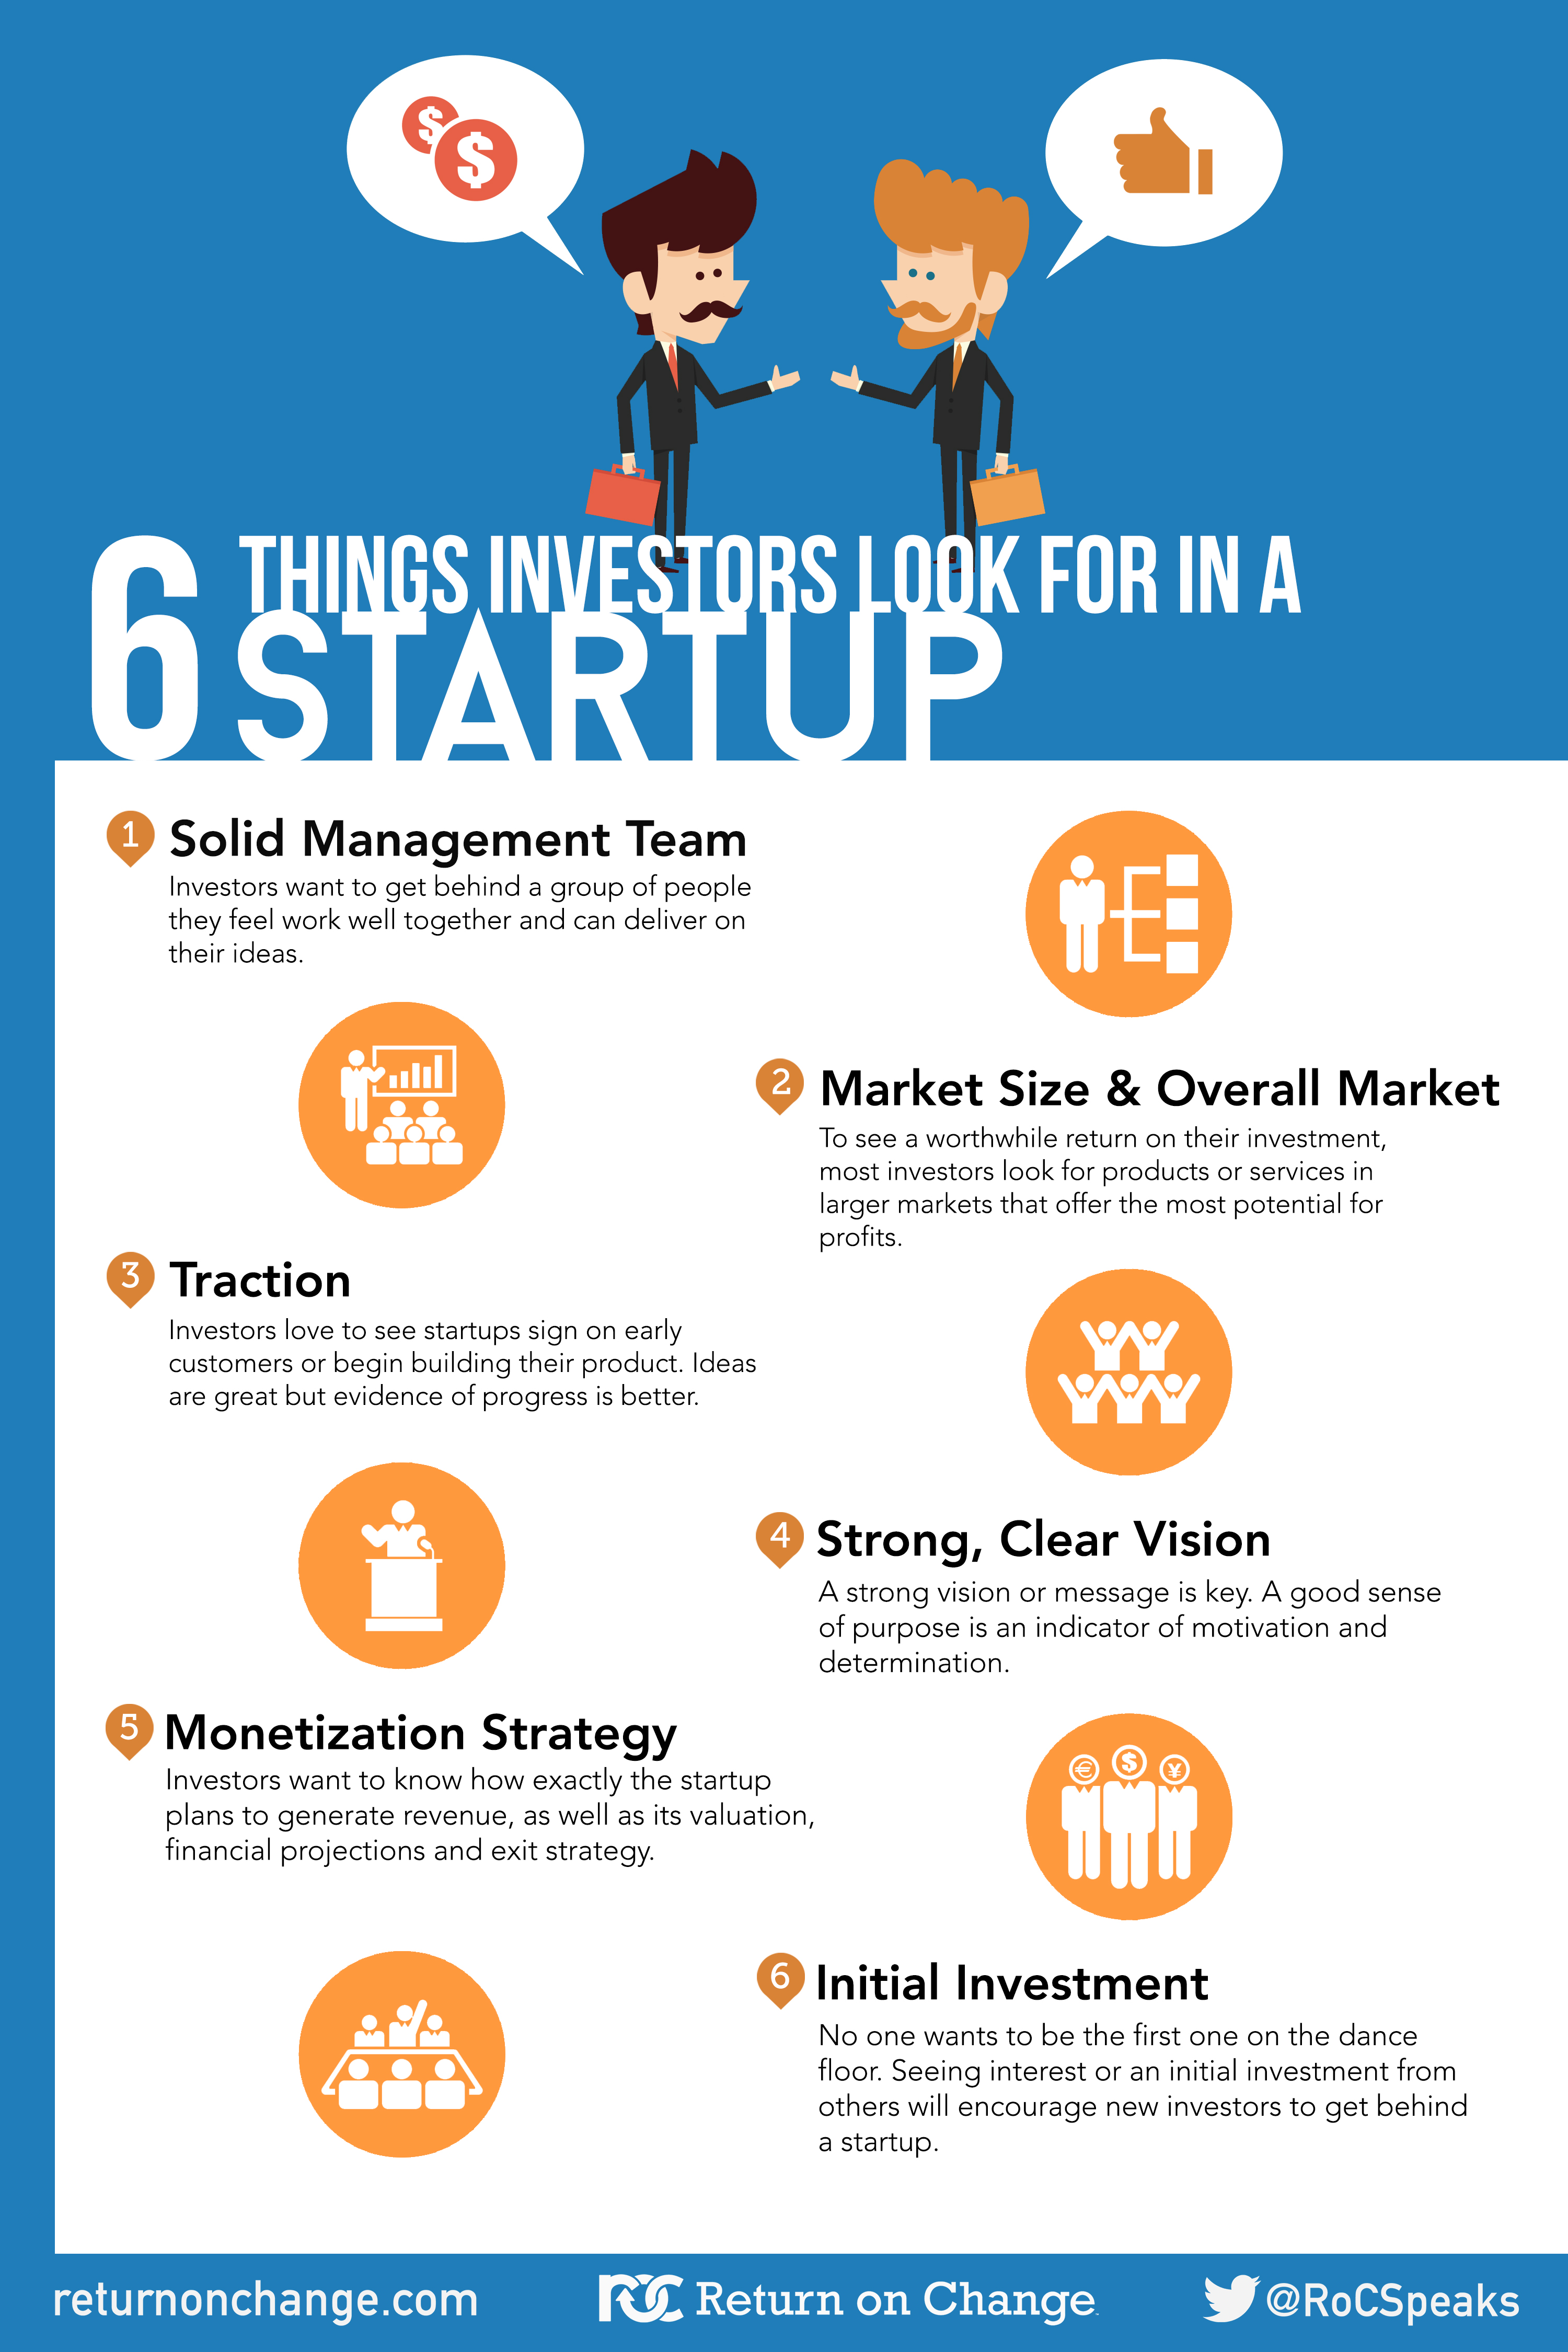 6-Things-Investors-Look-For-in-a-Startup-Infographic